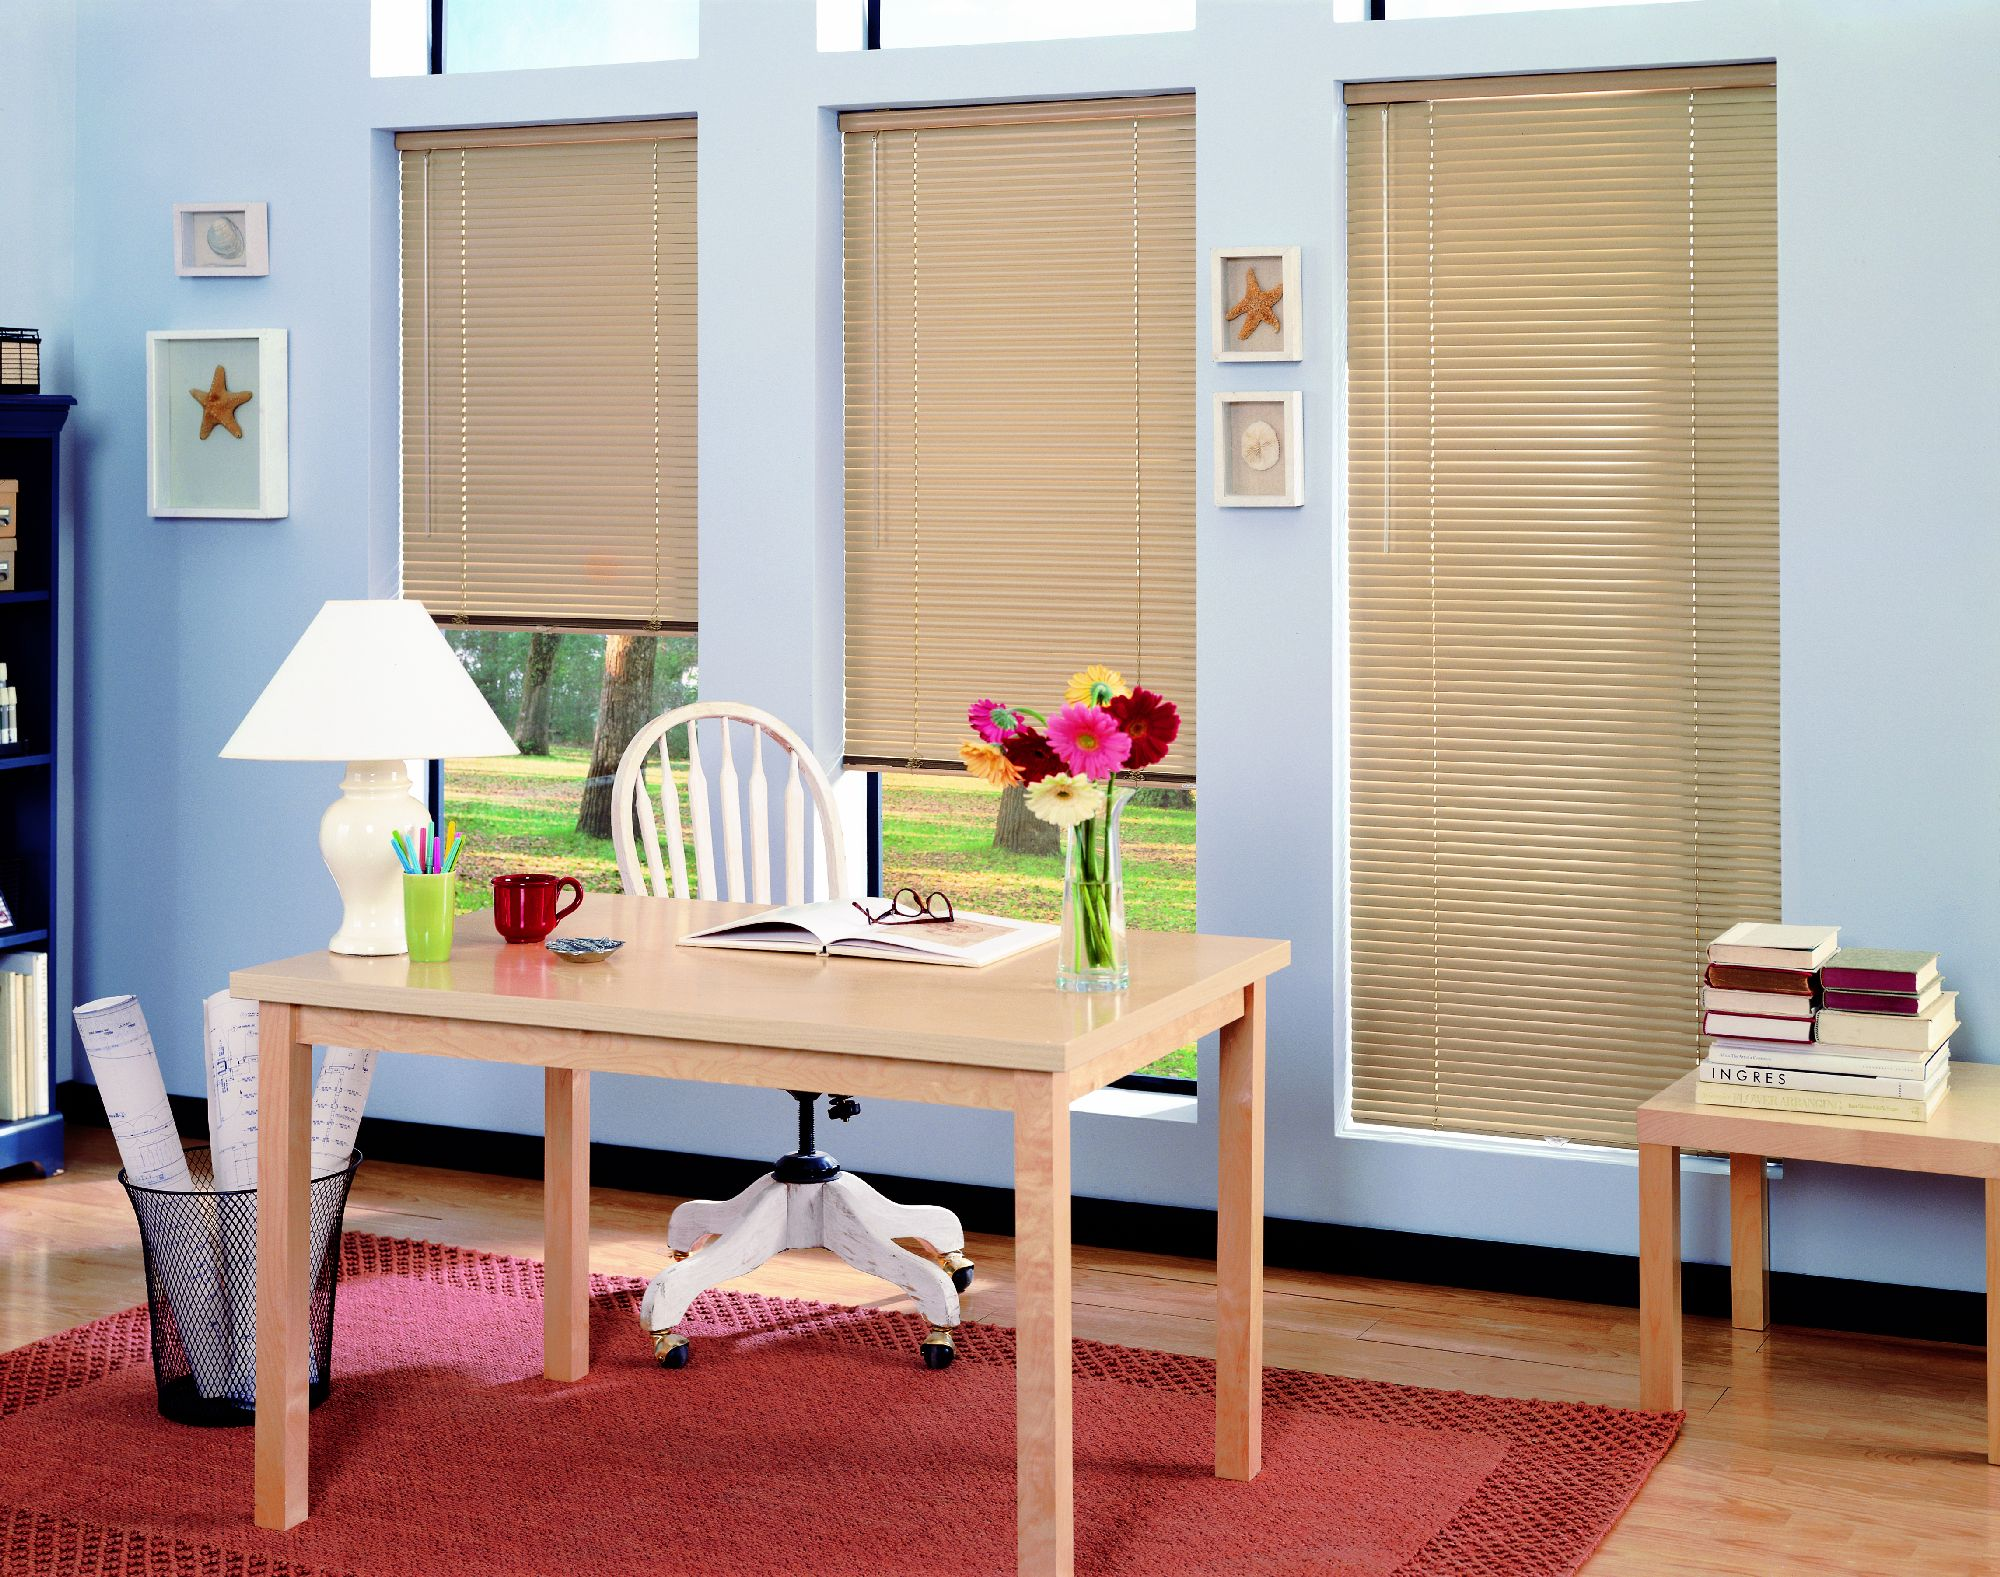 info repair ny prices showroom locations day days reviews houston tx denver angeles sacramento blinds los madklubben chicago